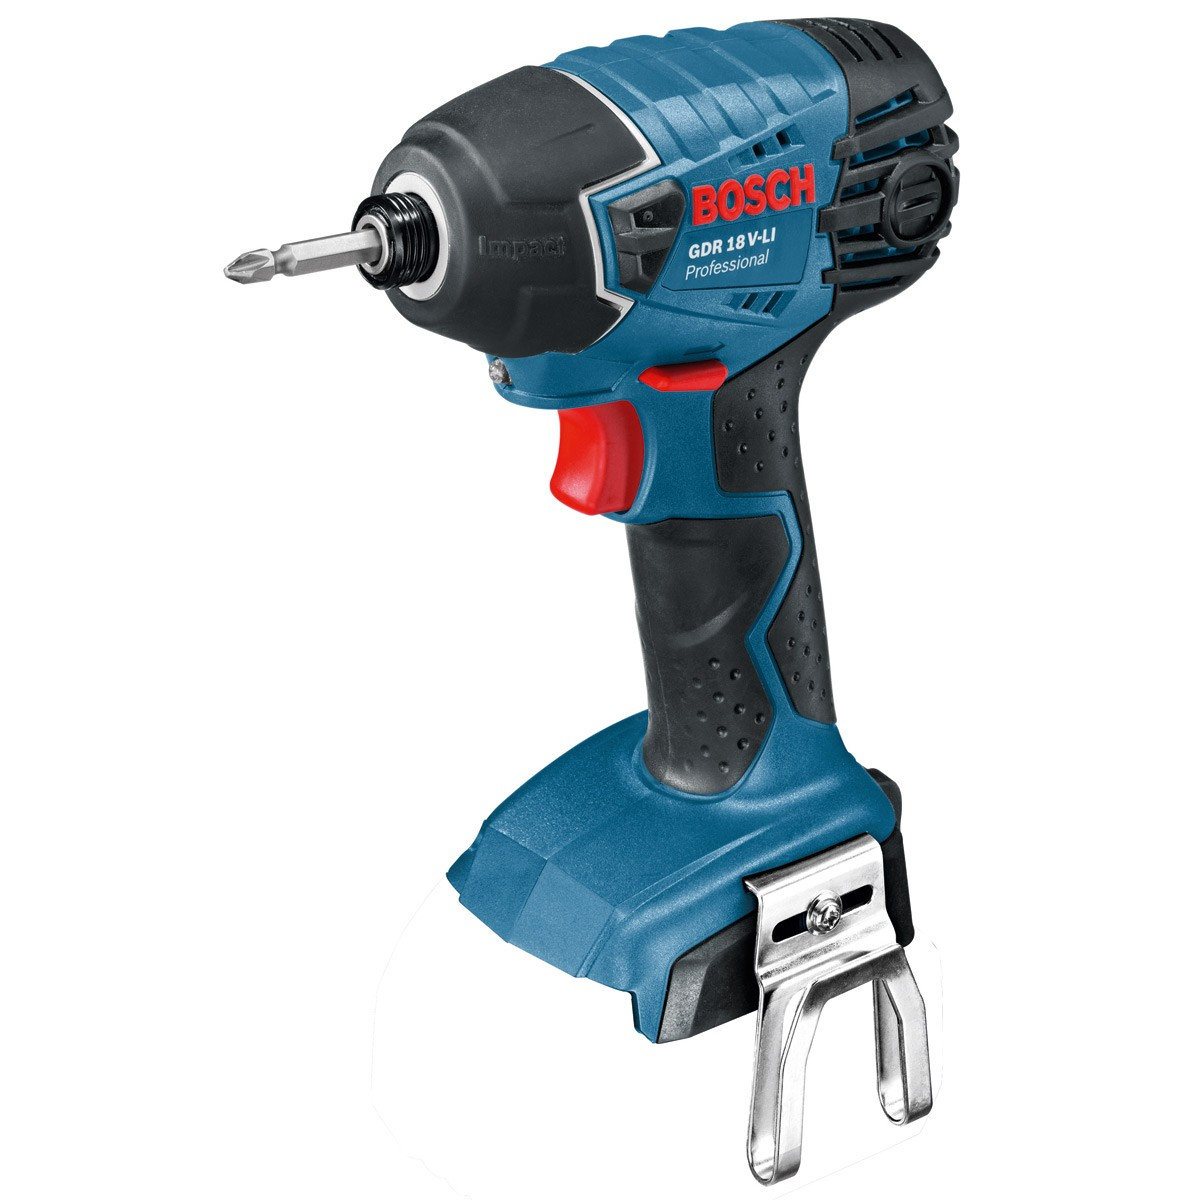 bosch gdr 18 v li impact driver body only 06019a1301 06019a130f powertool world. Black Bedroom Furniture Sets. Home Design Ideas